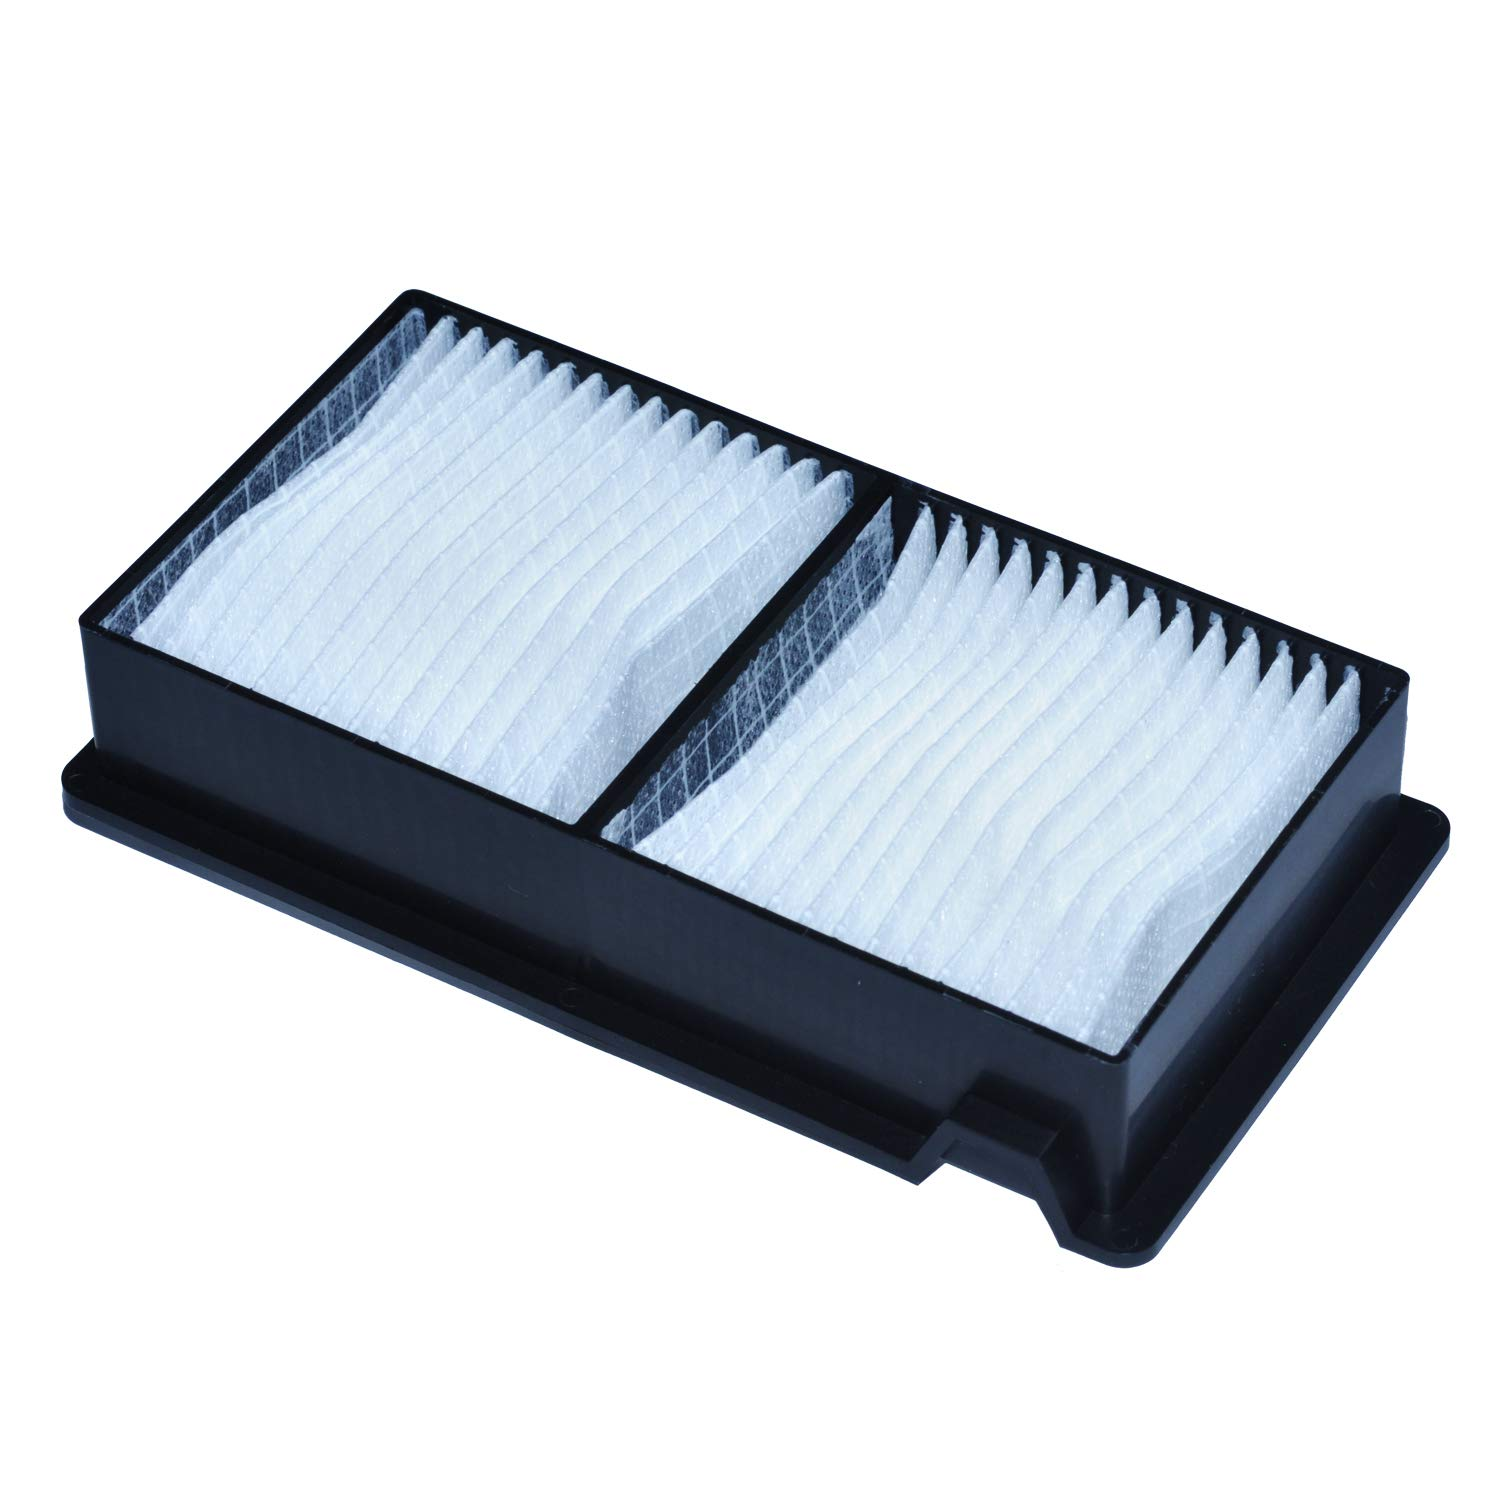 AWO Replacement Projector Air Filter Fit for EPSON ELPAF39 V13H134A39 EH-LS10000,EH-LS10500,EH-TW6600,EH-TW6600W,EH-TW6700,EH-TW6800,EH-TW7200,EH-TW7300,EH-TW8000,EH-TW8100,EH-TW8200,EH-TW8300